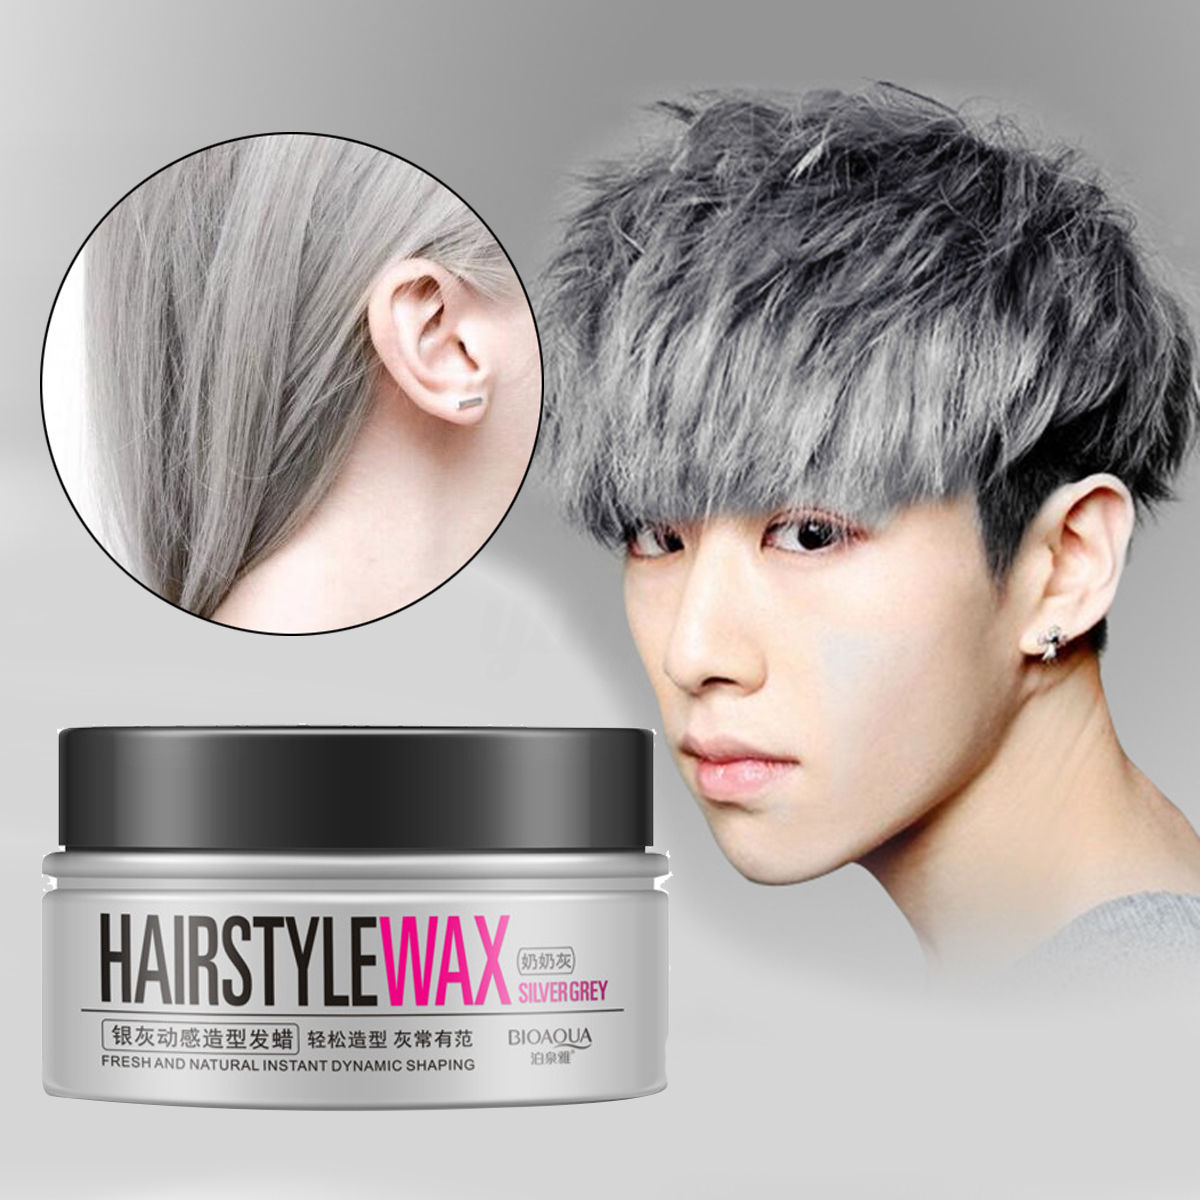 BIOAQUA Unisex Temporary Modeling Gray Silver DIY Hair Color Wax Hair Mud Water Gel Hair Modelling <font><b>Styling</b></font> Products